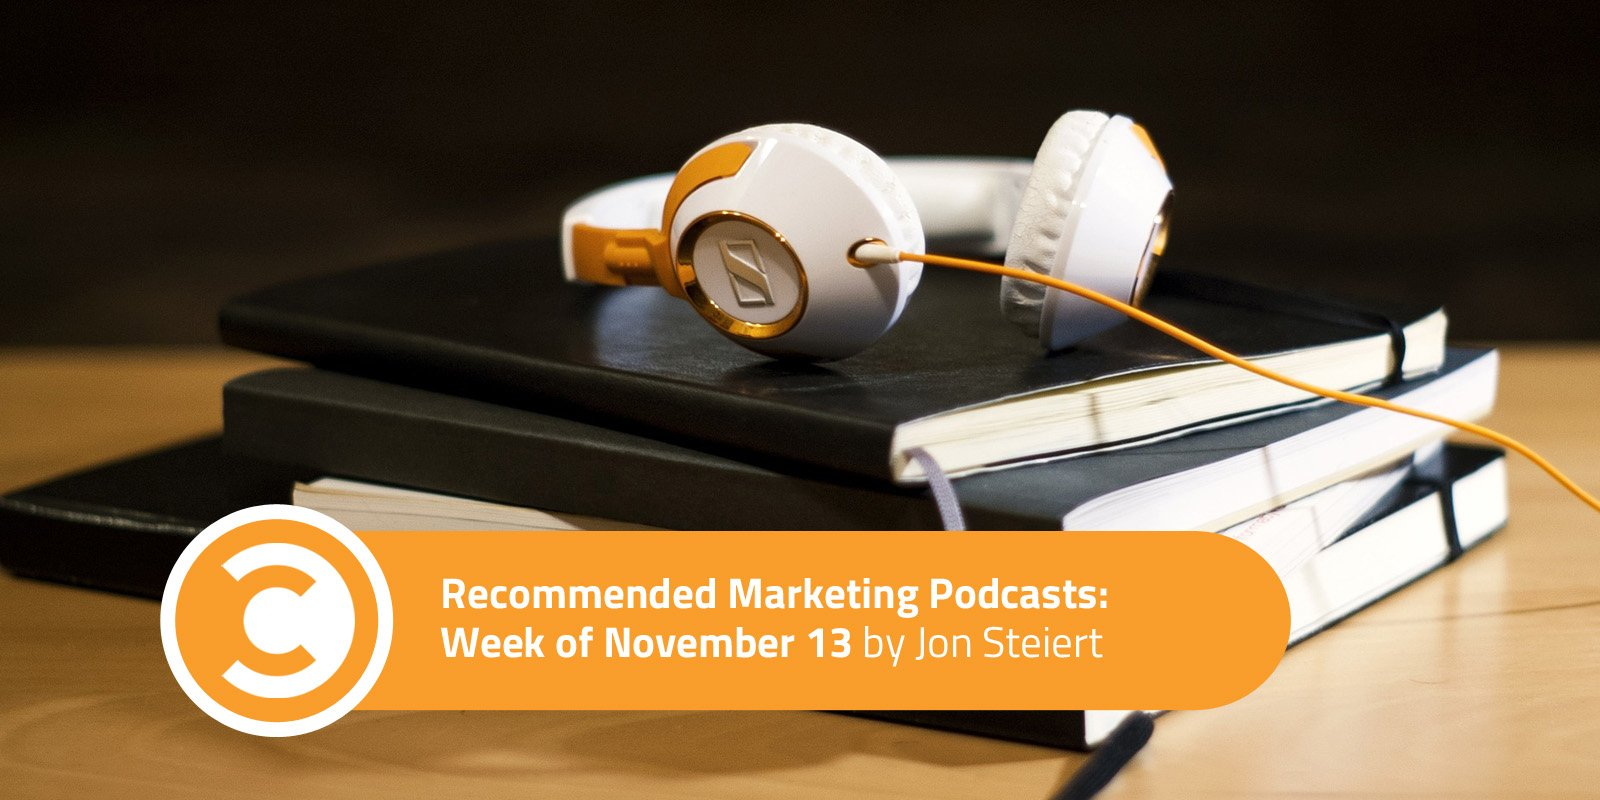 Recommended Marketing Podcasts Week of November 13